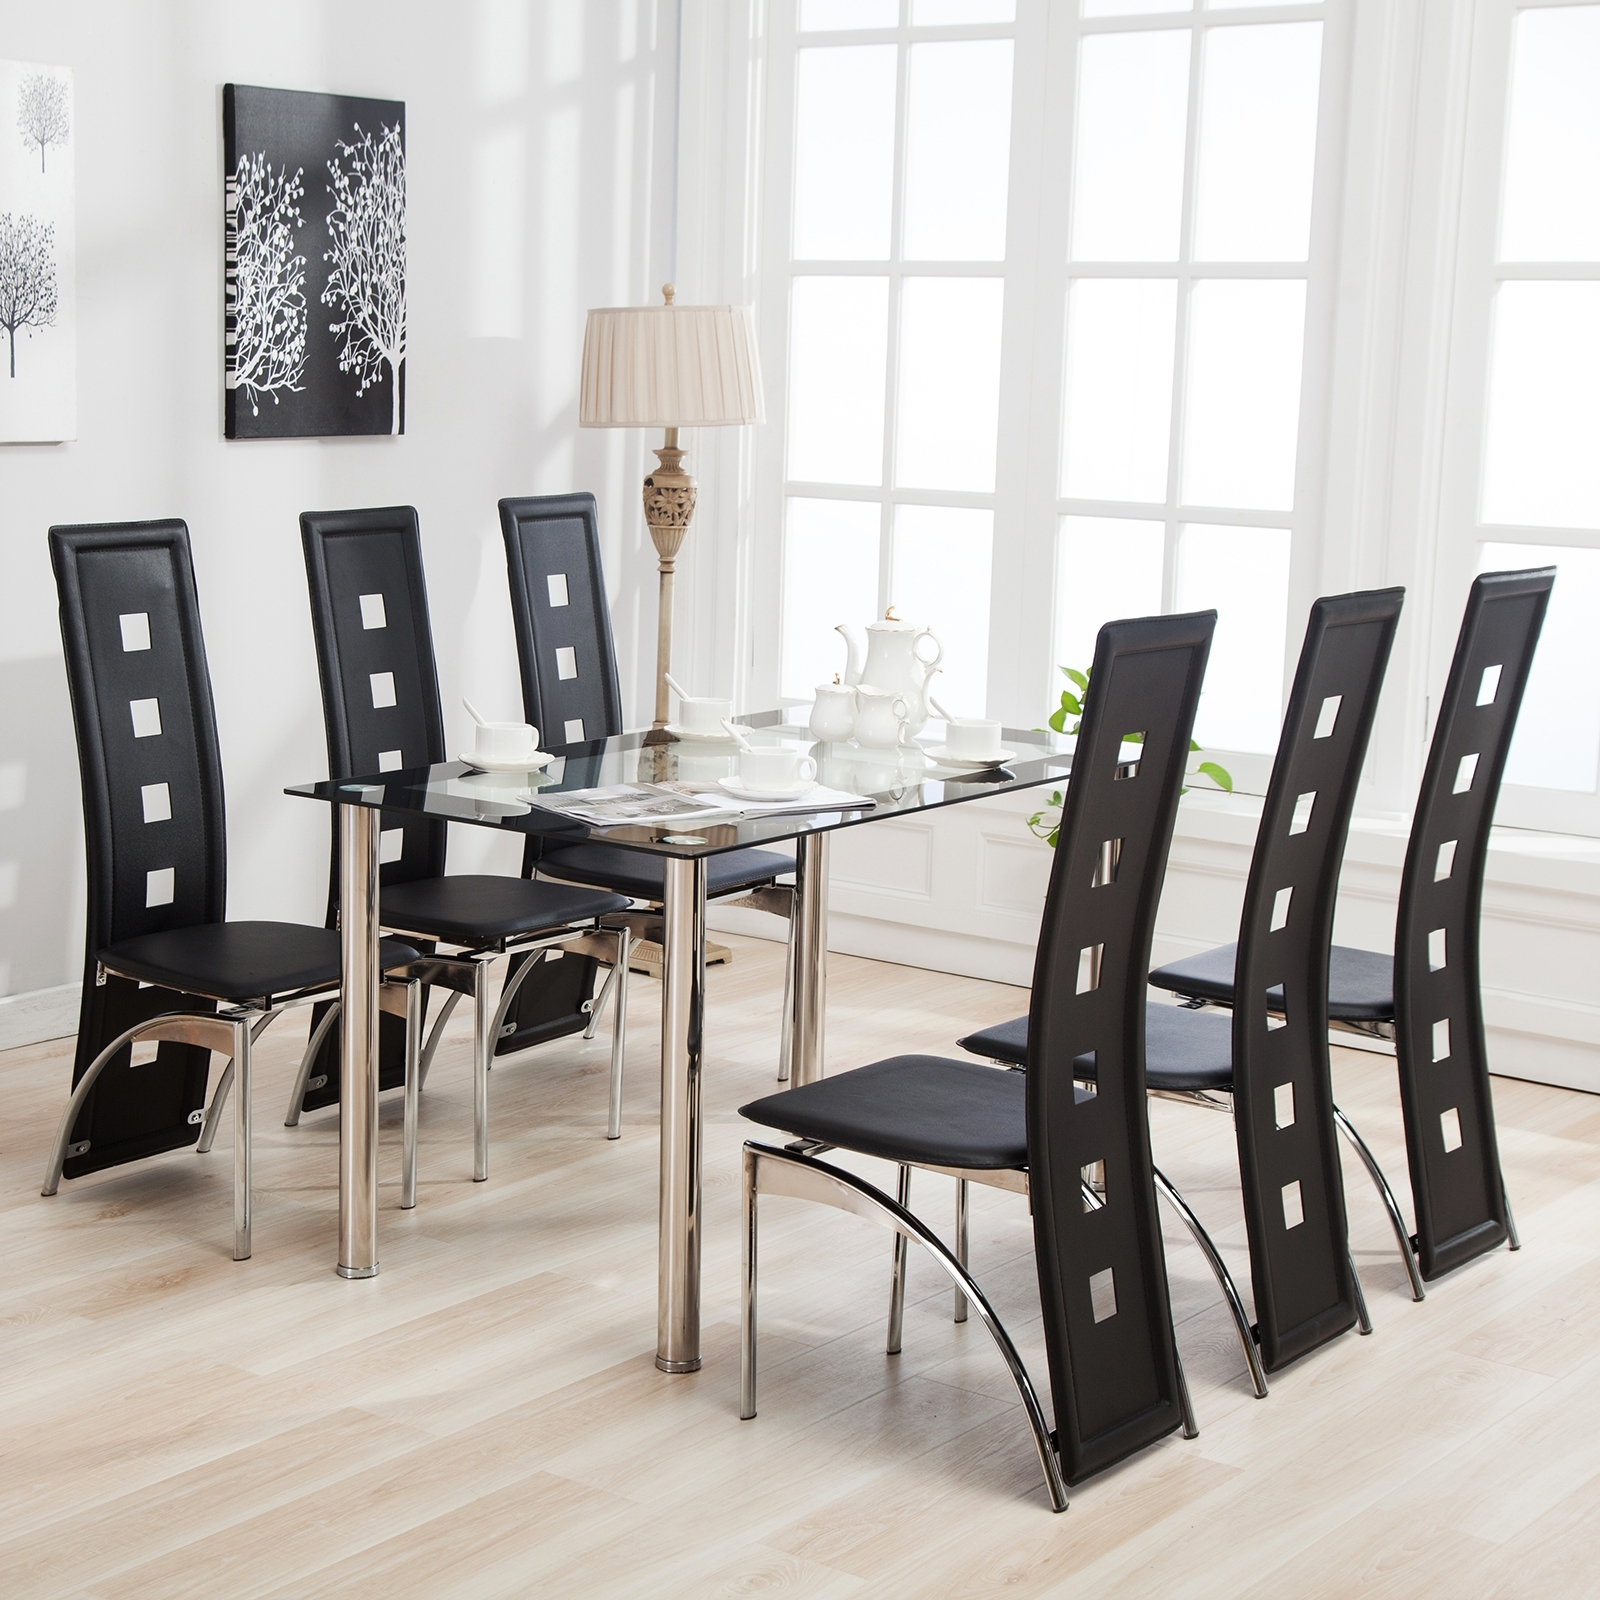 Cheap Glass Dining Tables And 6 Chairs With Regard To Well Known Mecor 7Pcs Dining Table Set 6 Chairs Glass Metal Kitchen Room (Gallery 15 of 25)